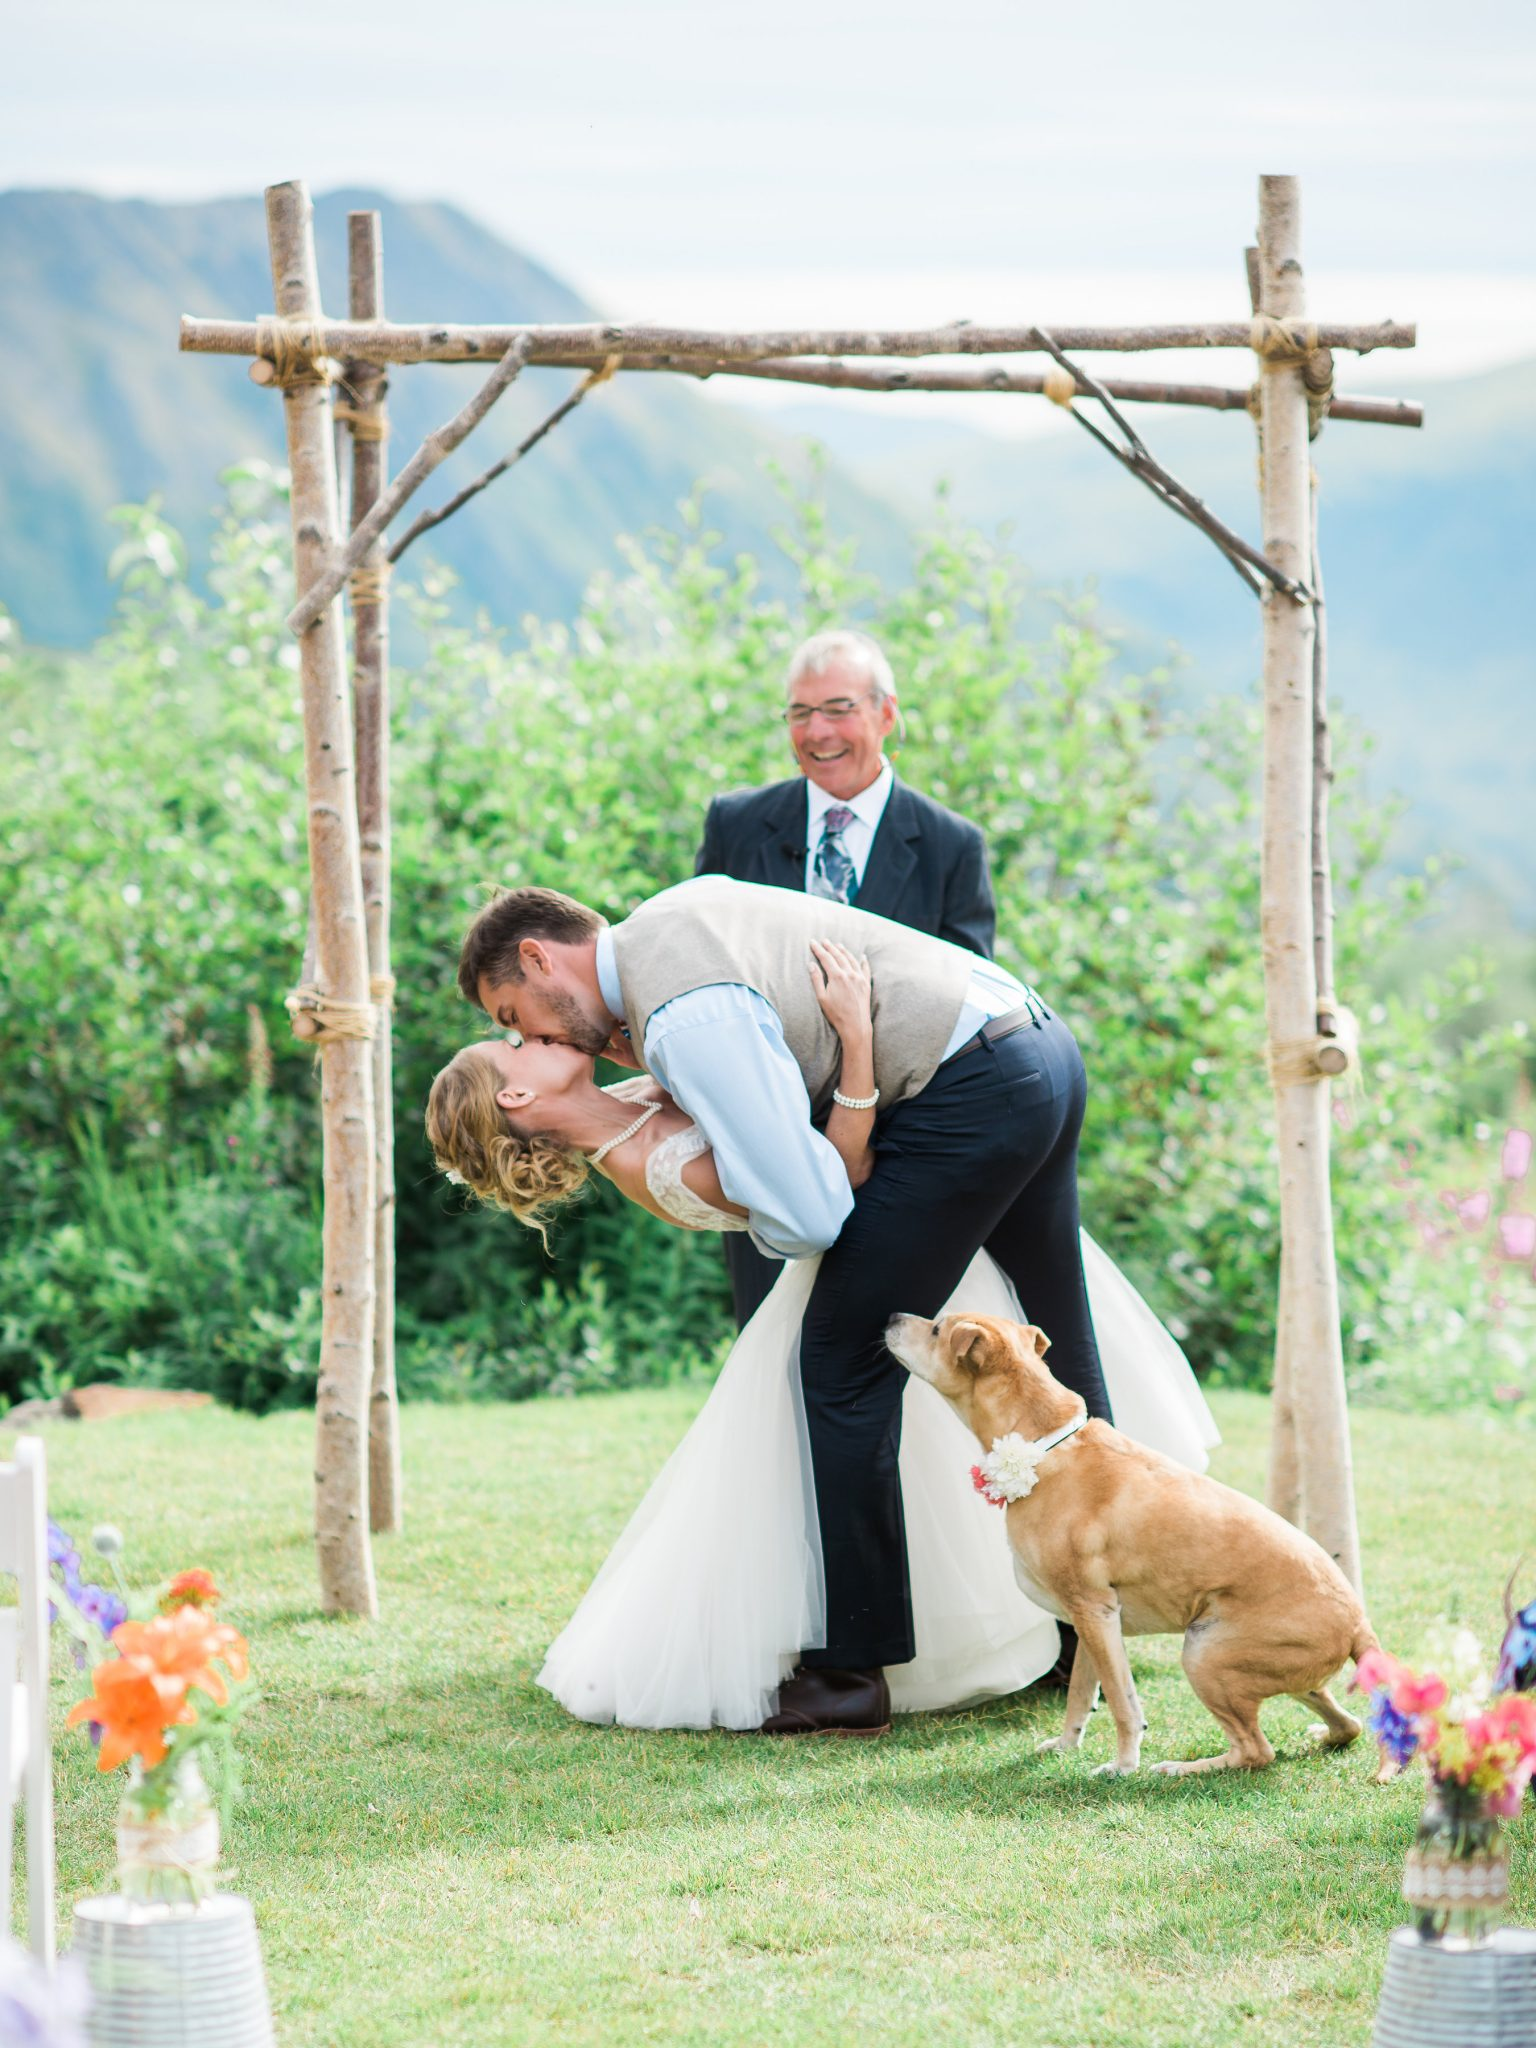 Anchorage Wedding Officiant